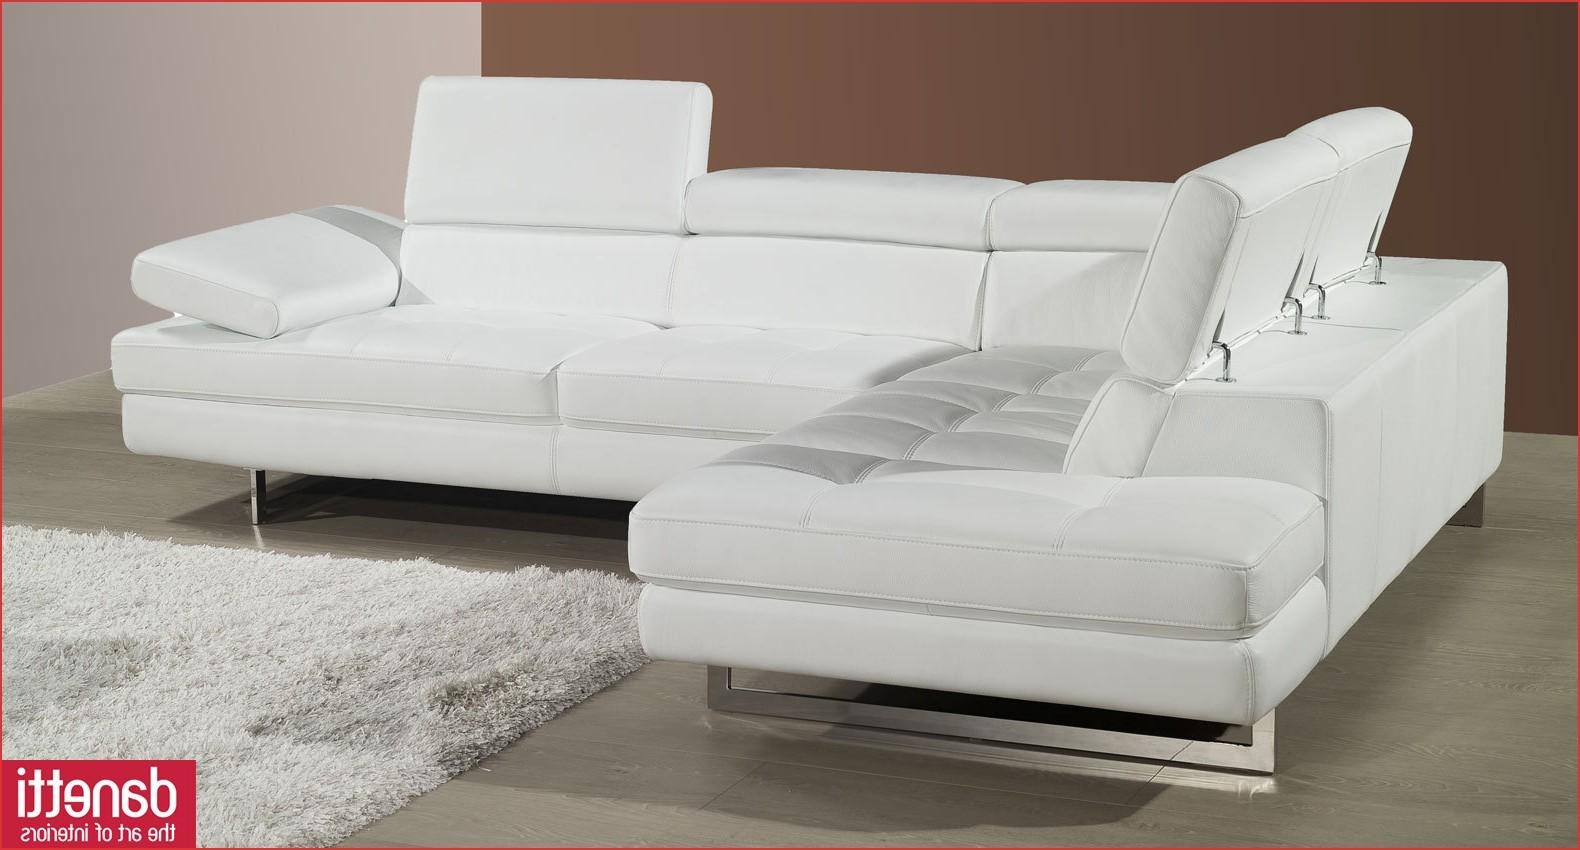 Contemporary Leather Corner Sofas Best Of Glamour Leather Corner With Leather Corner Sofas (Image 7 of 20)